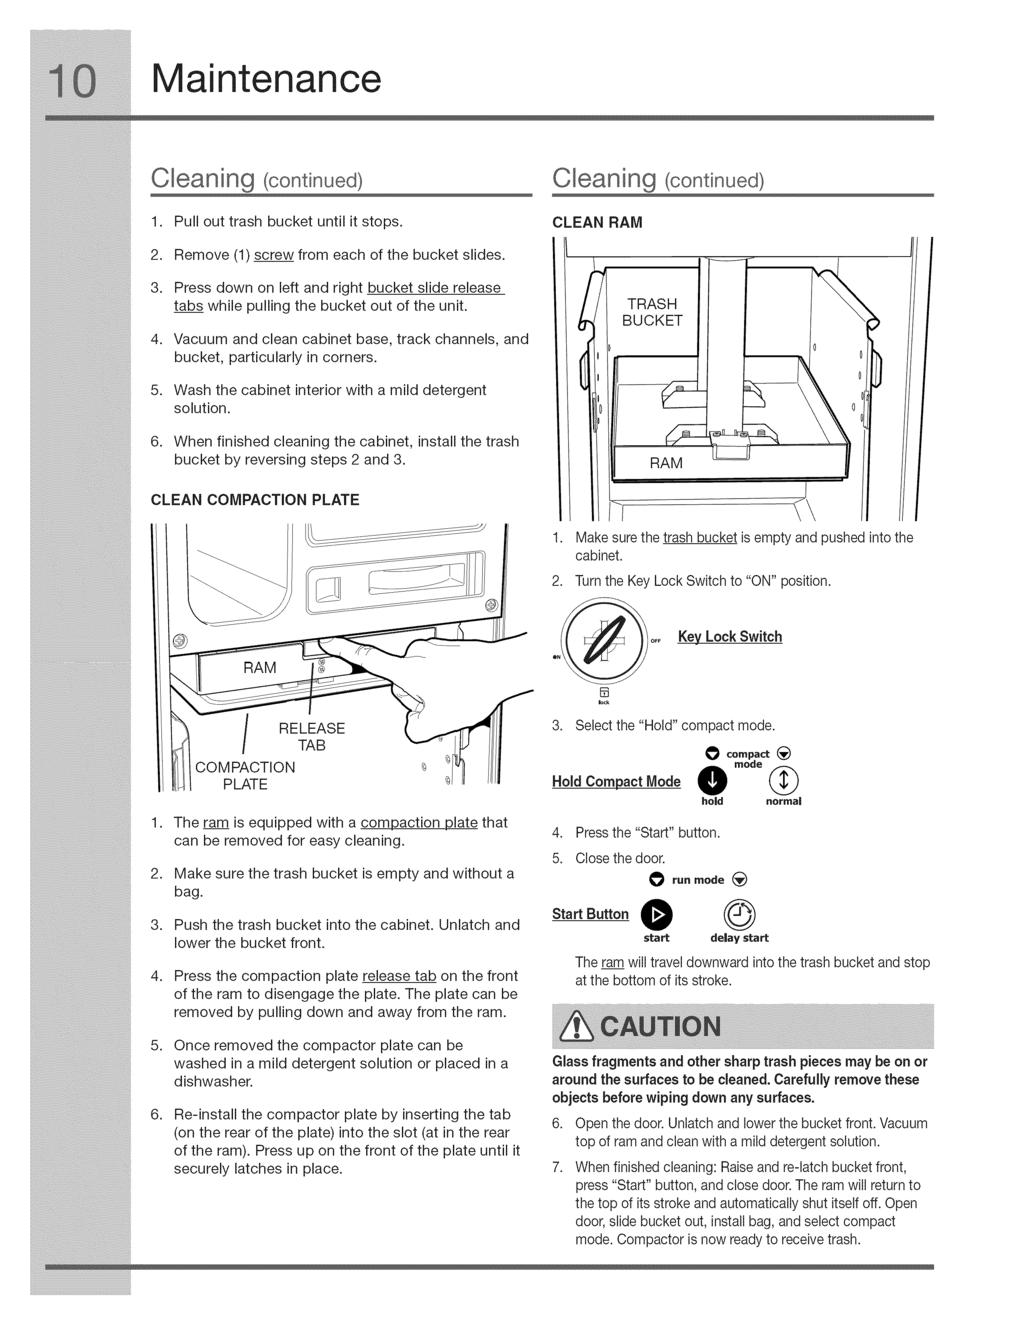 Maintenance Cleaning (continued) Cleaning (continued) 1. Pull out trash bucket until it stops. 2. Remove (1) screw from each of the bucket slides. CLEAN RAM / 3.